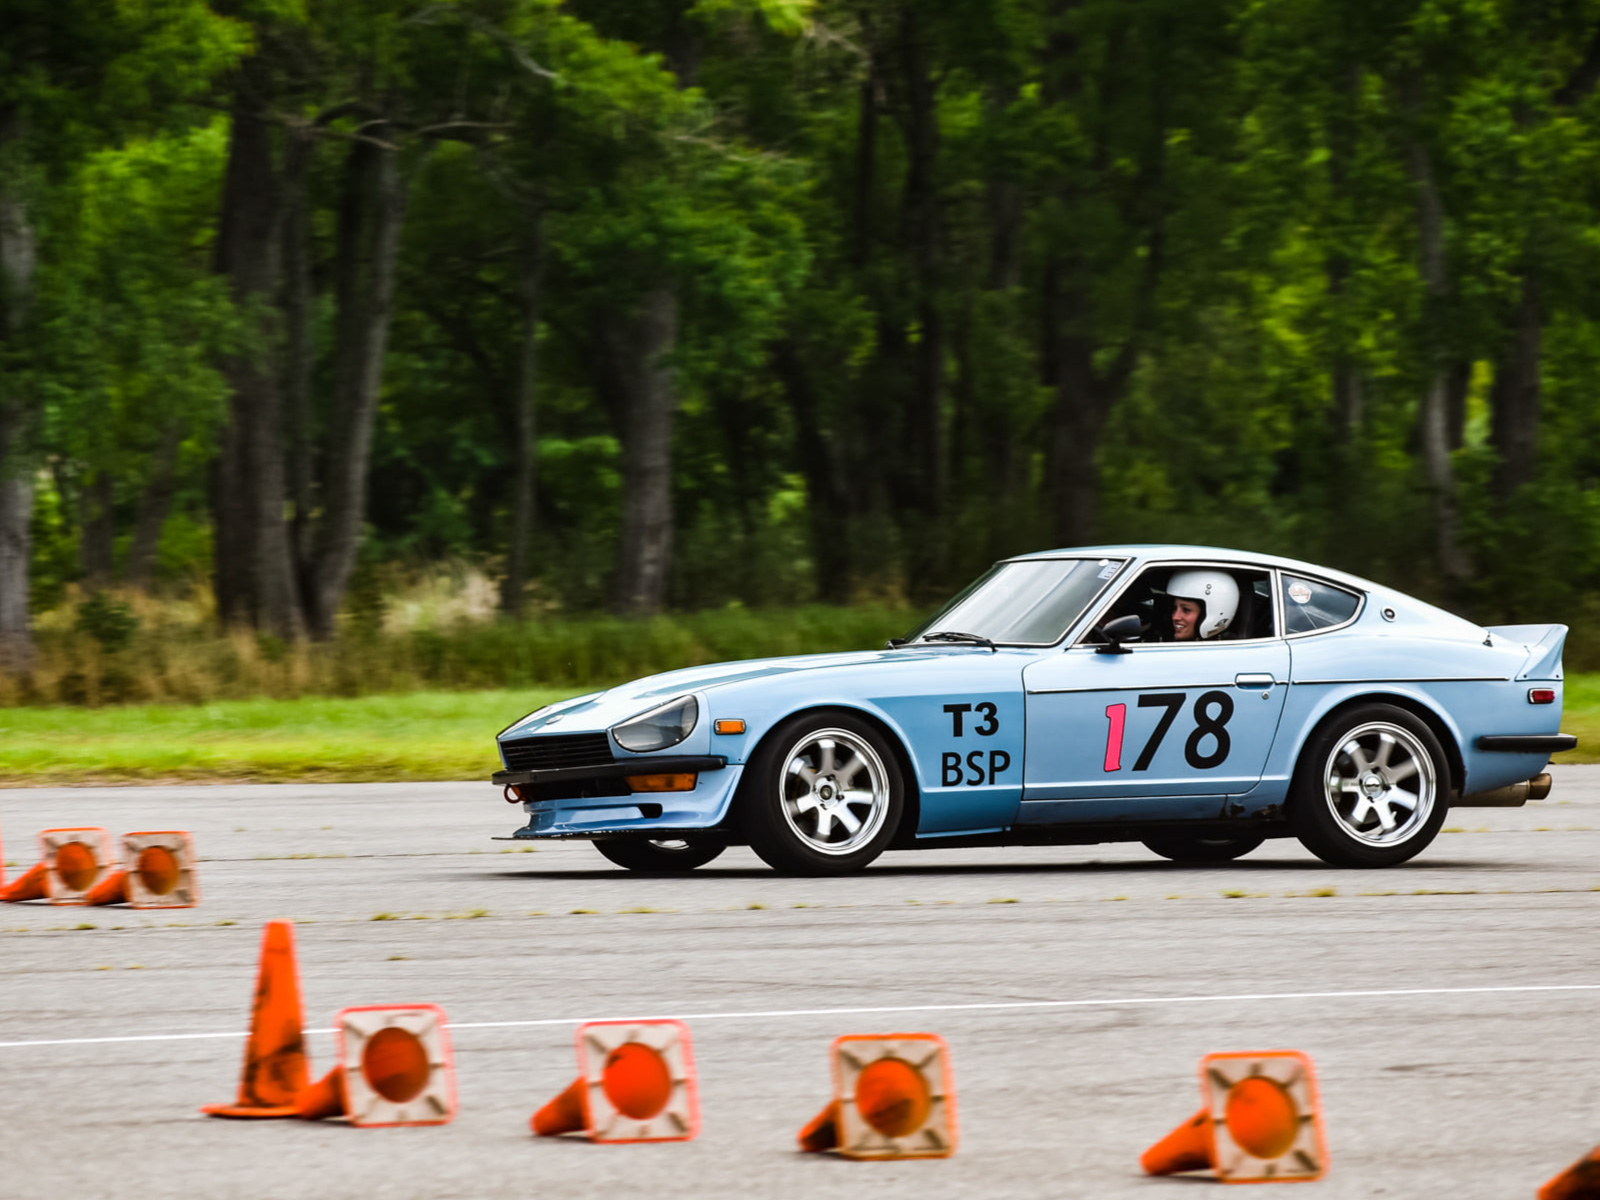 Autocross with the Buccaneer Region of the SCCA